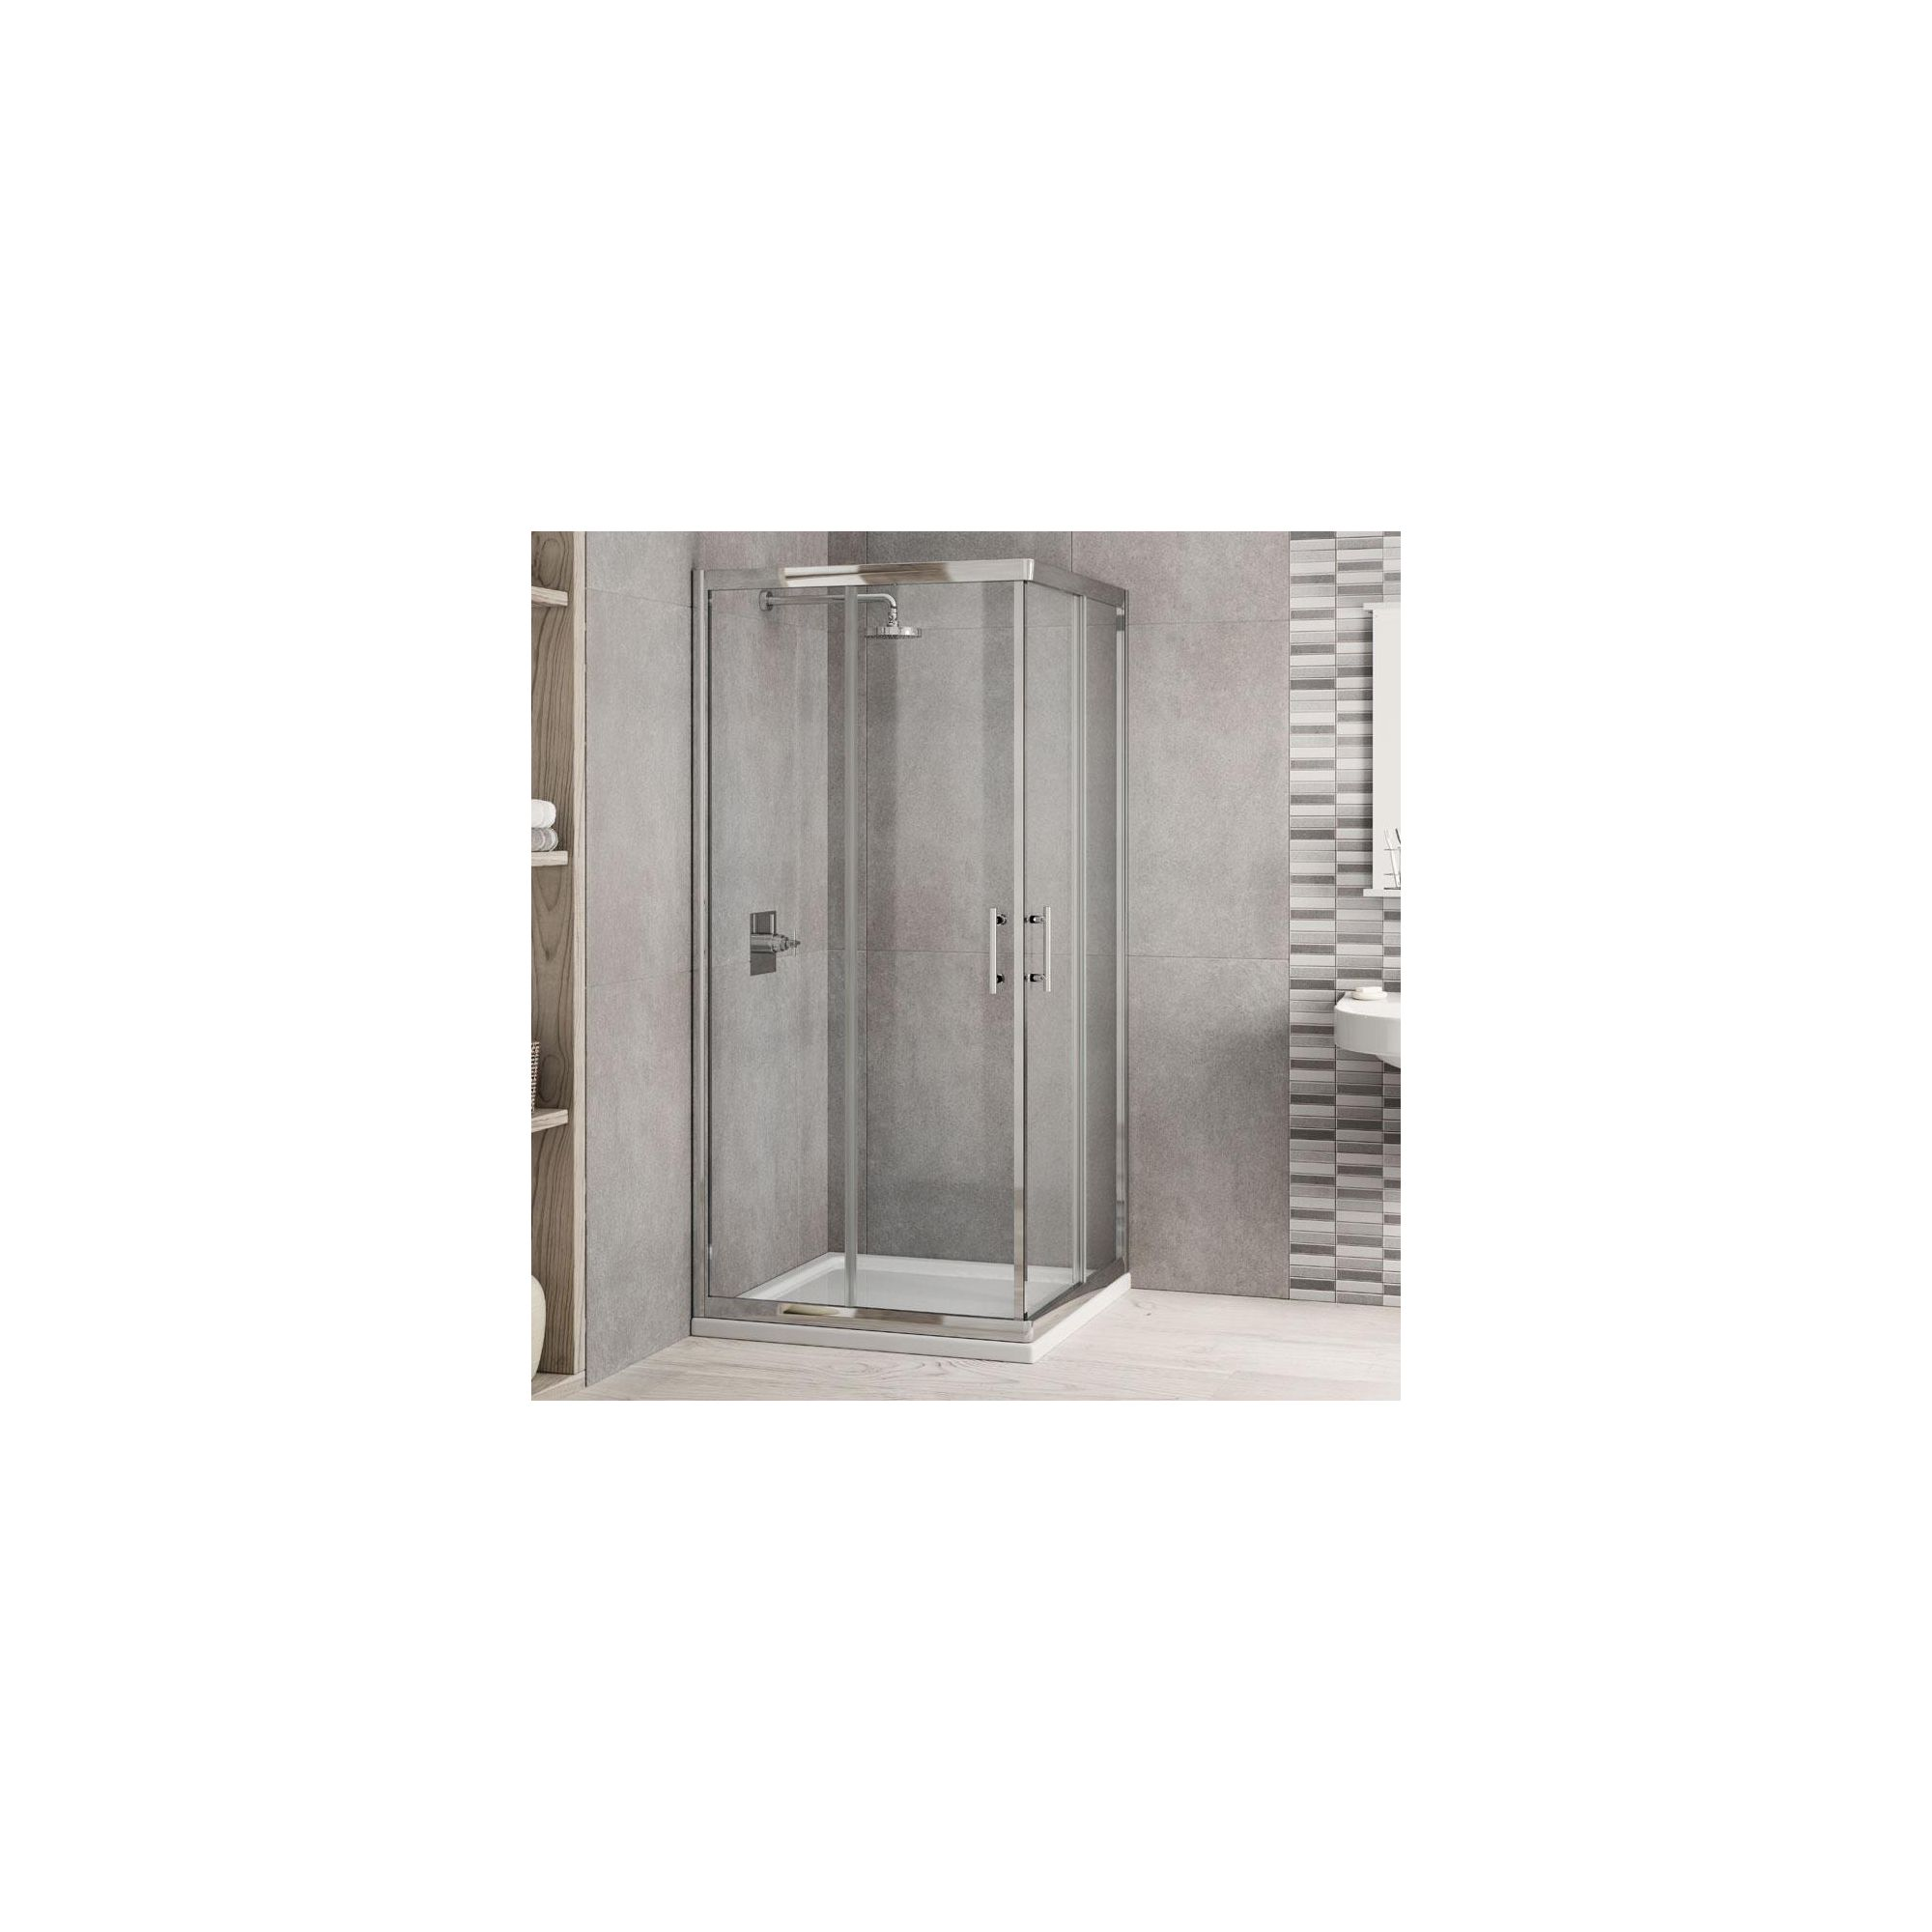 Elemis Inspire Corner Entry Shower Enclosure, 900mm x 900mm, 6mm Glass, Low Profile Tray at Tesco Direct